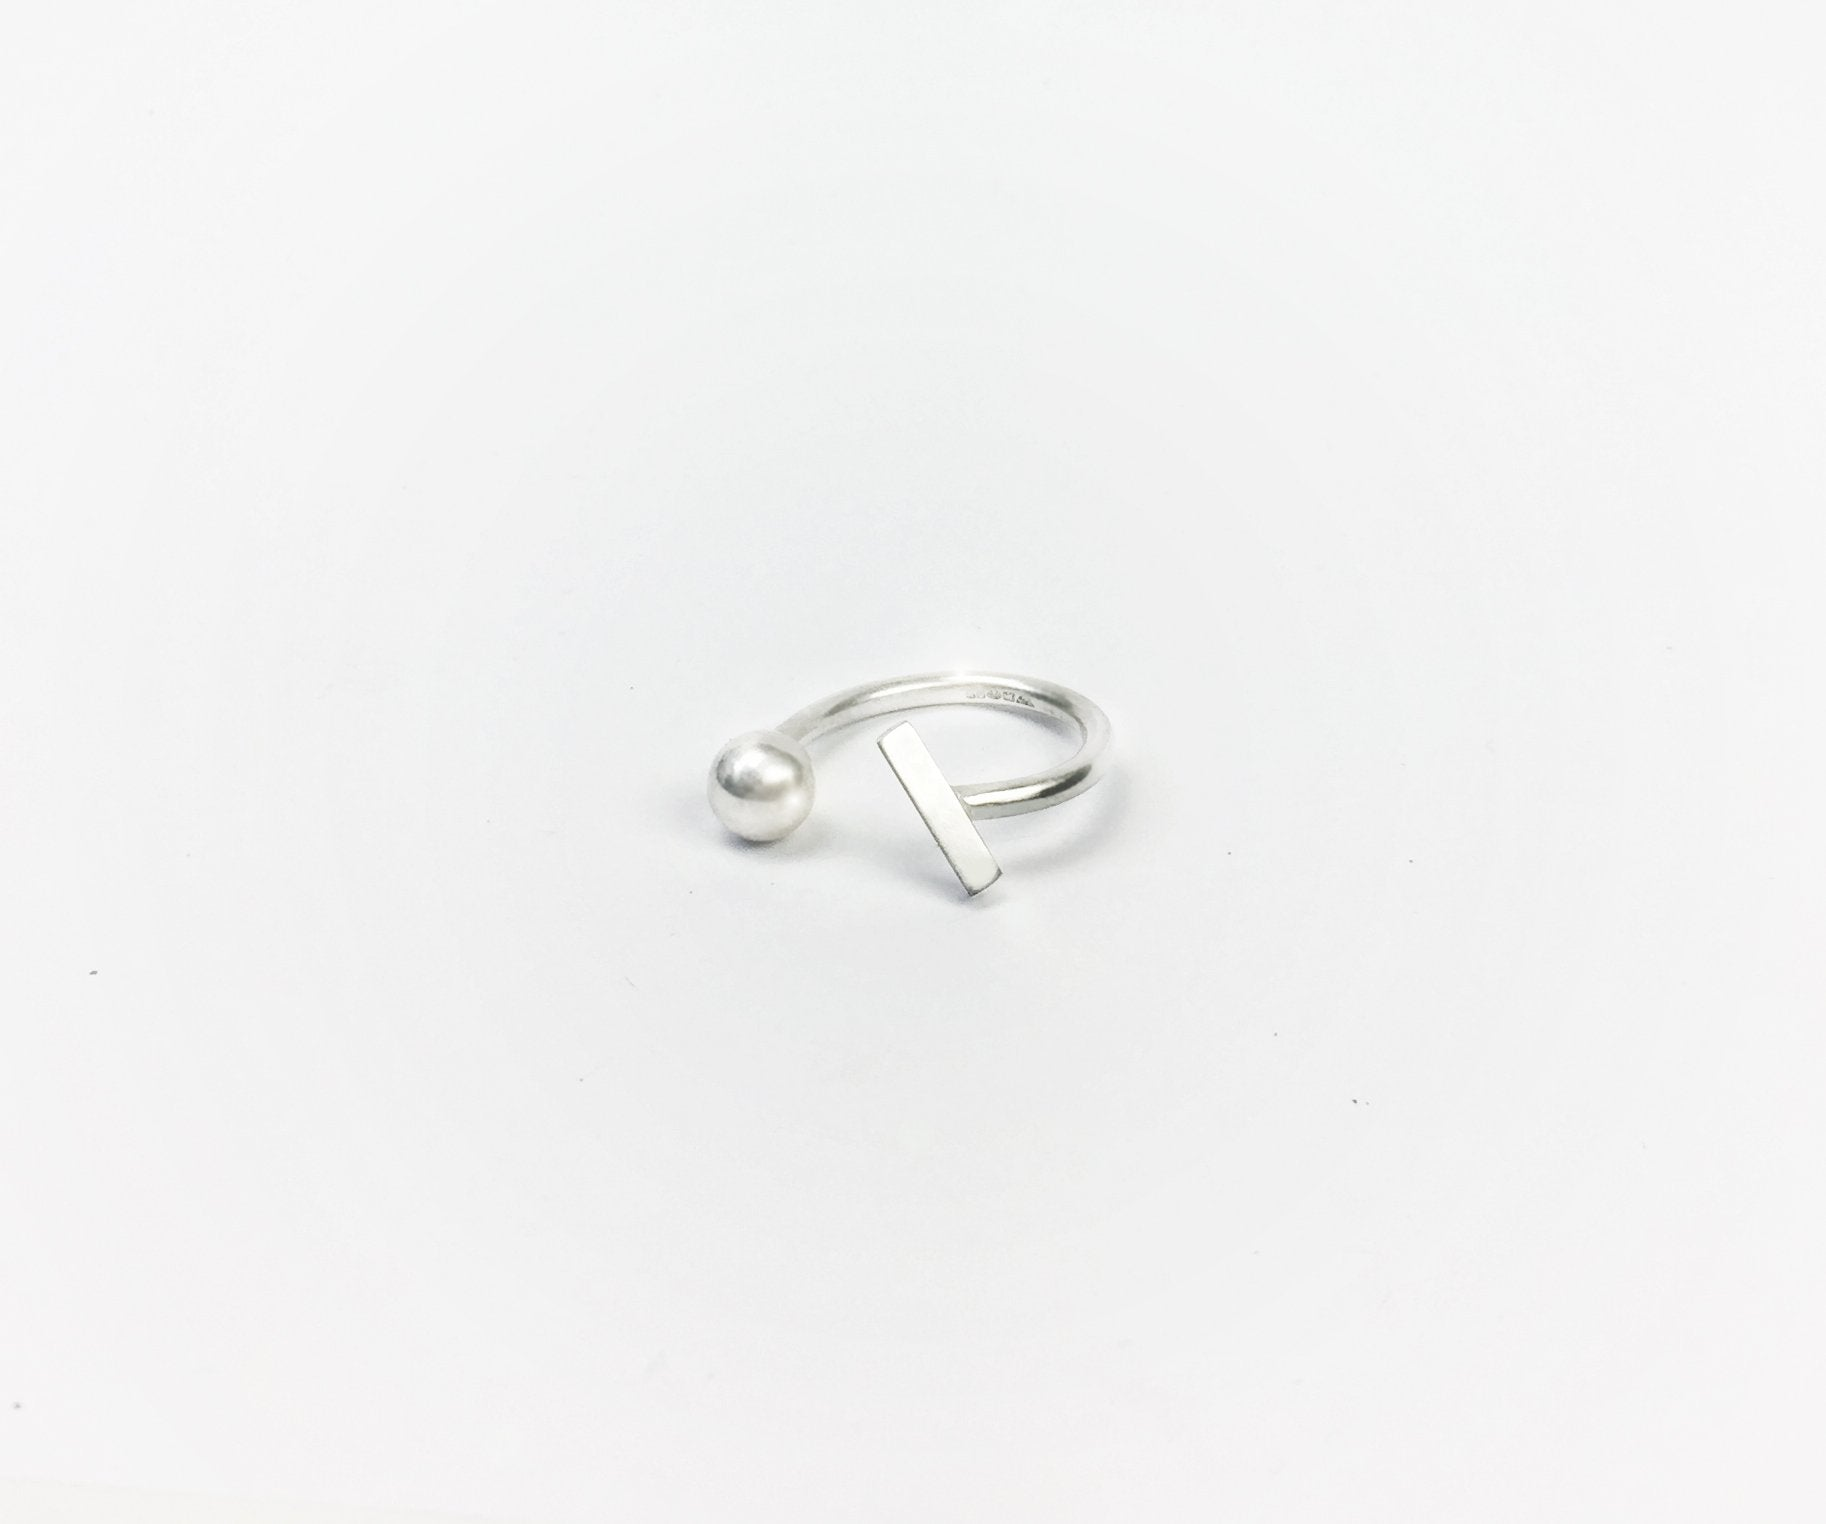 Wedge ring - Filia Rex